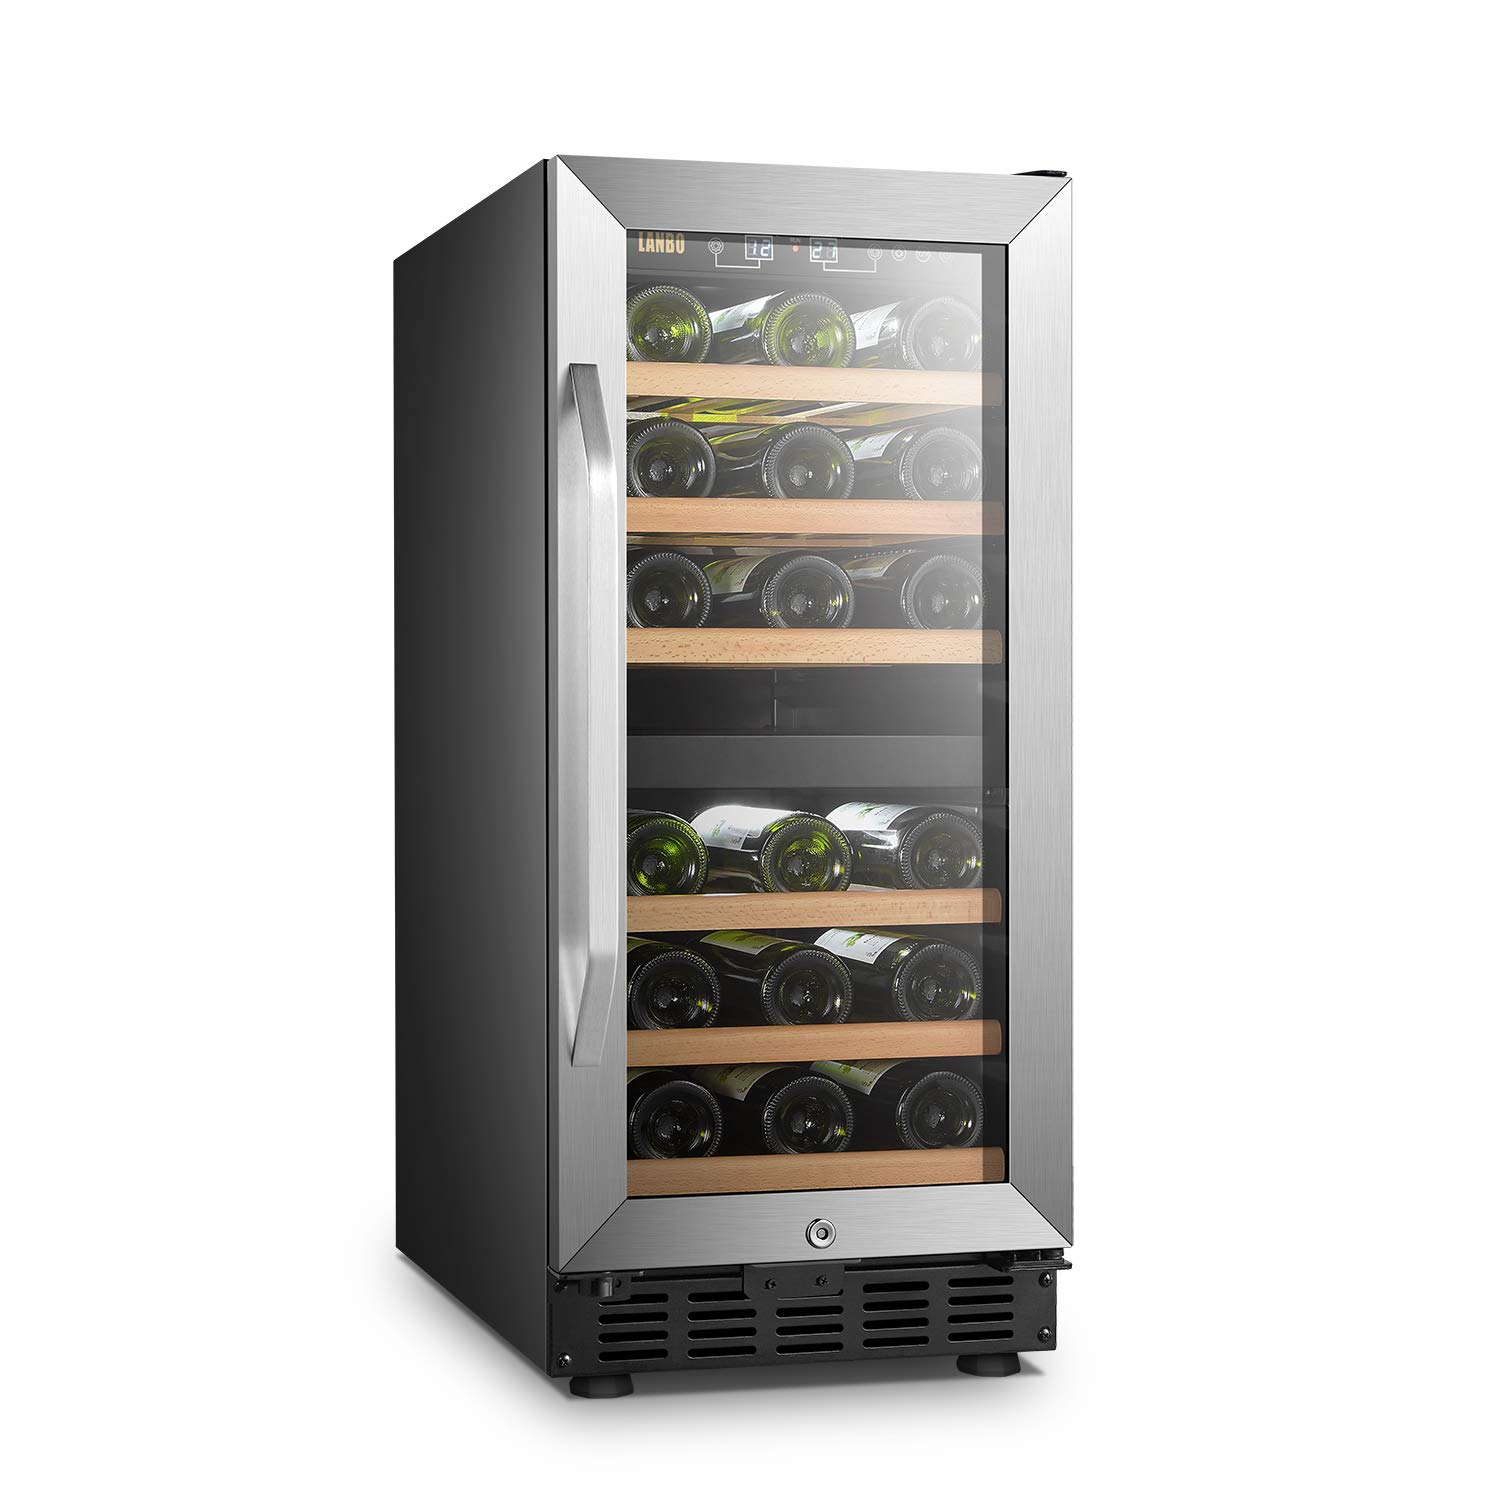 Lanbo 15 Inch Wide Dual Zone Wine Refrigerator, 28 Bottles Built In Compressor Wine Cooler by Lanbo